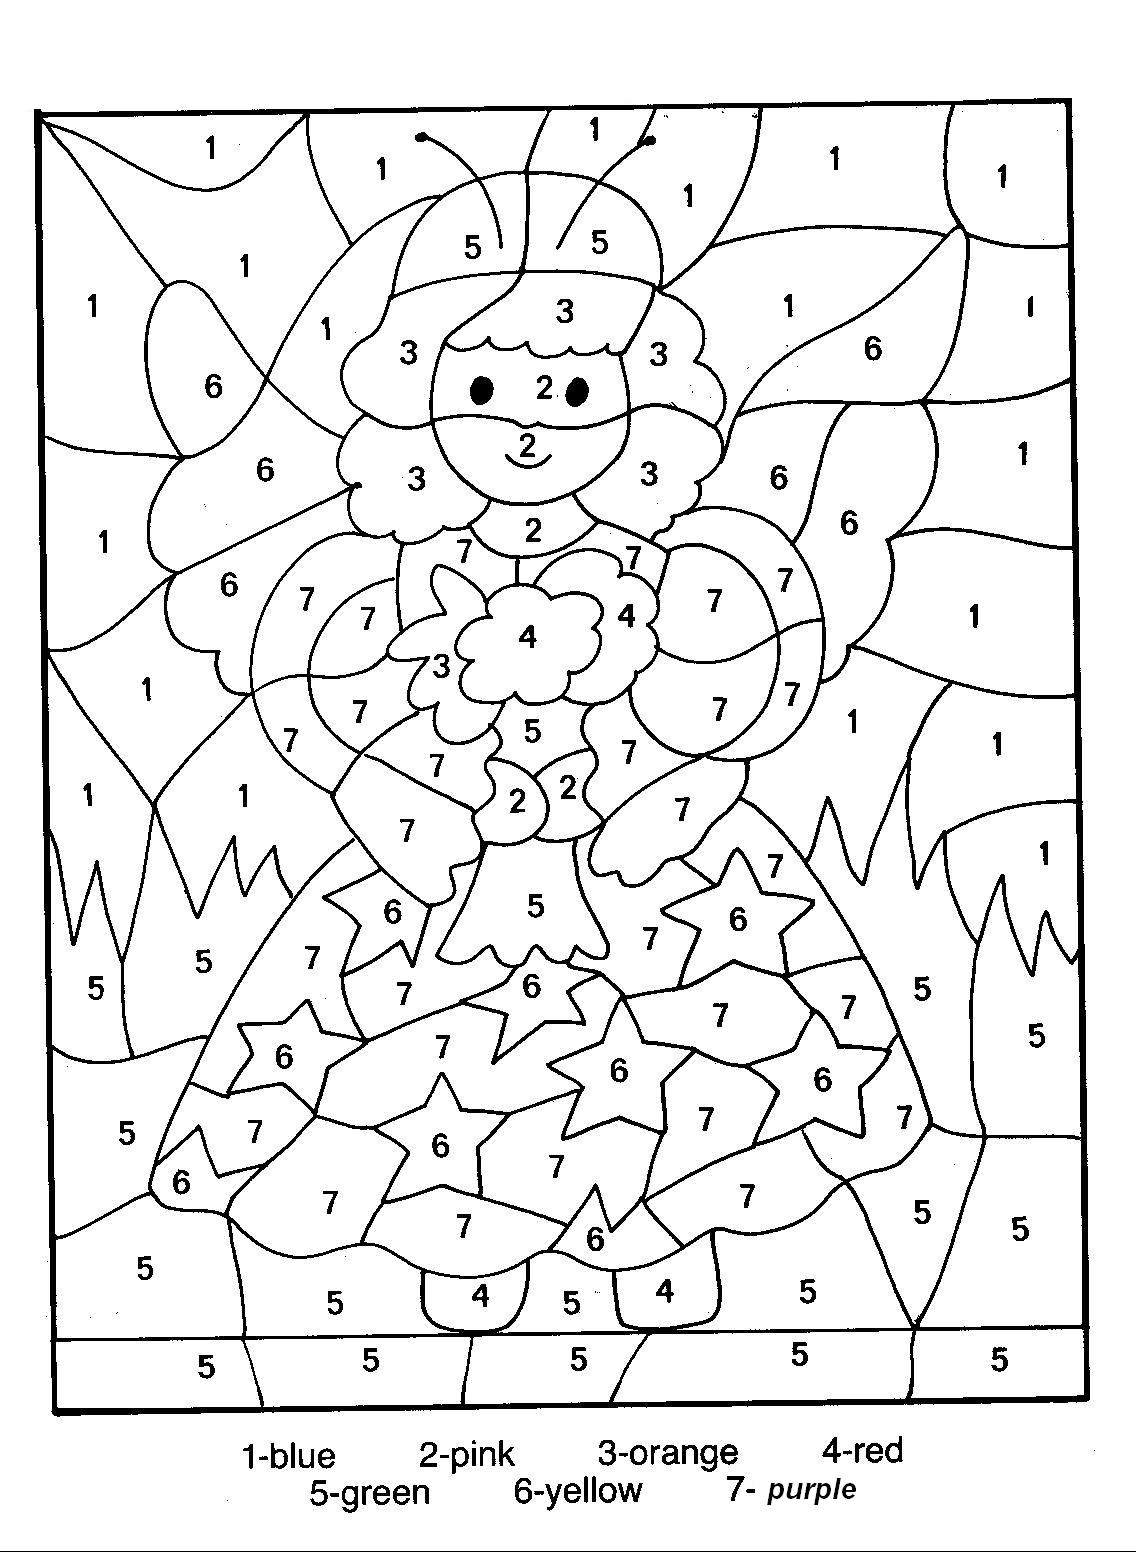 download number coloring pages 13 - Coloring Activities For Children